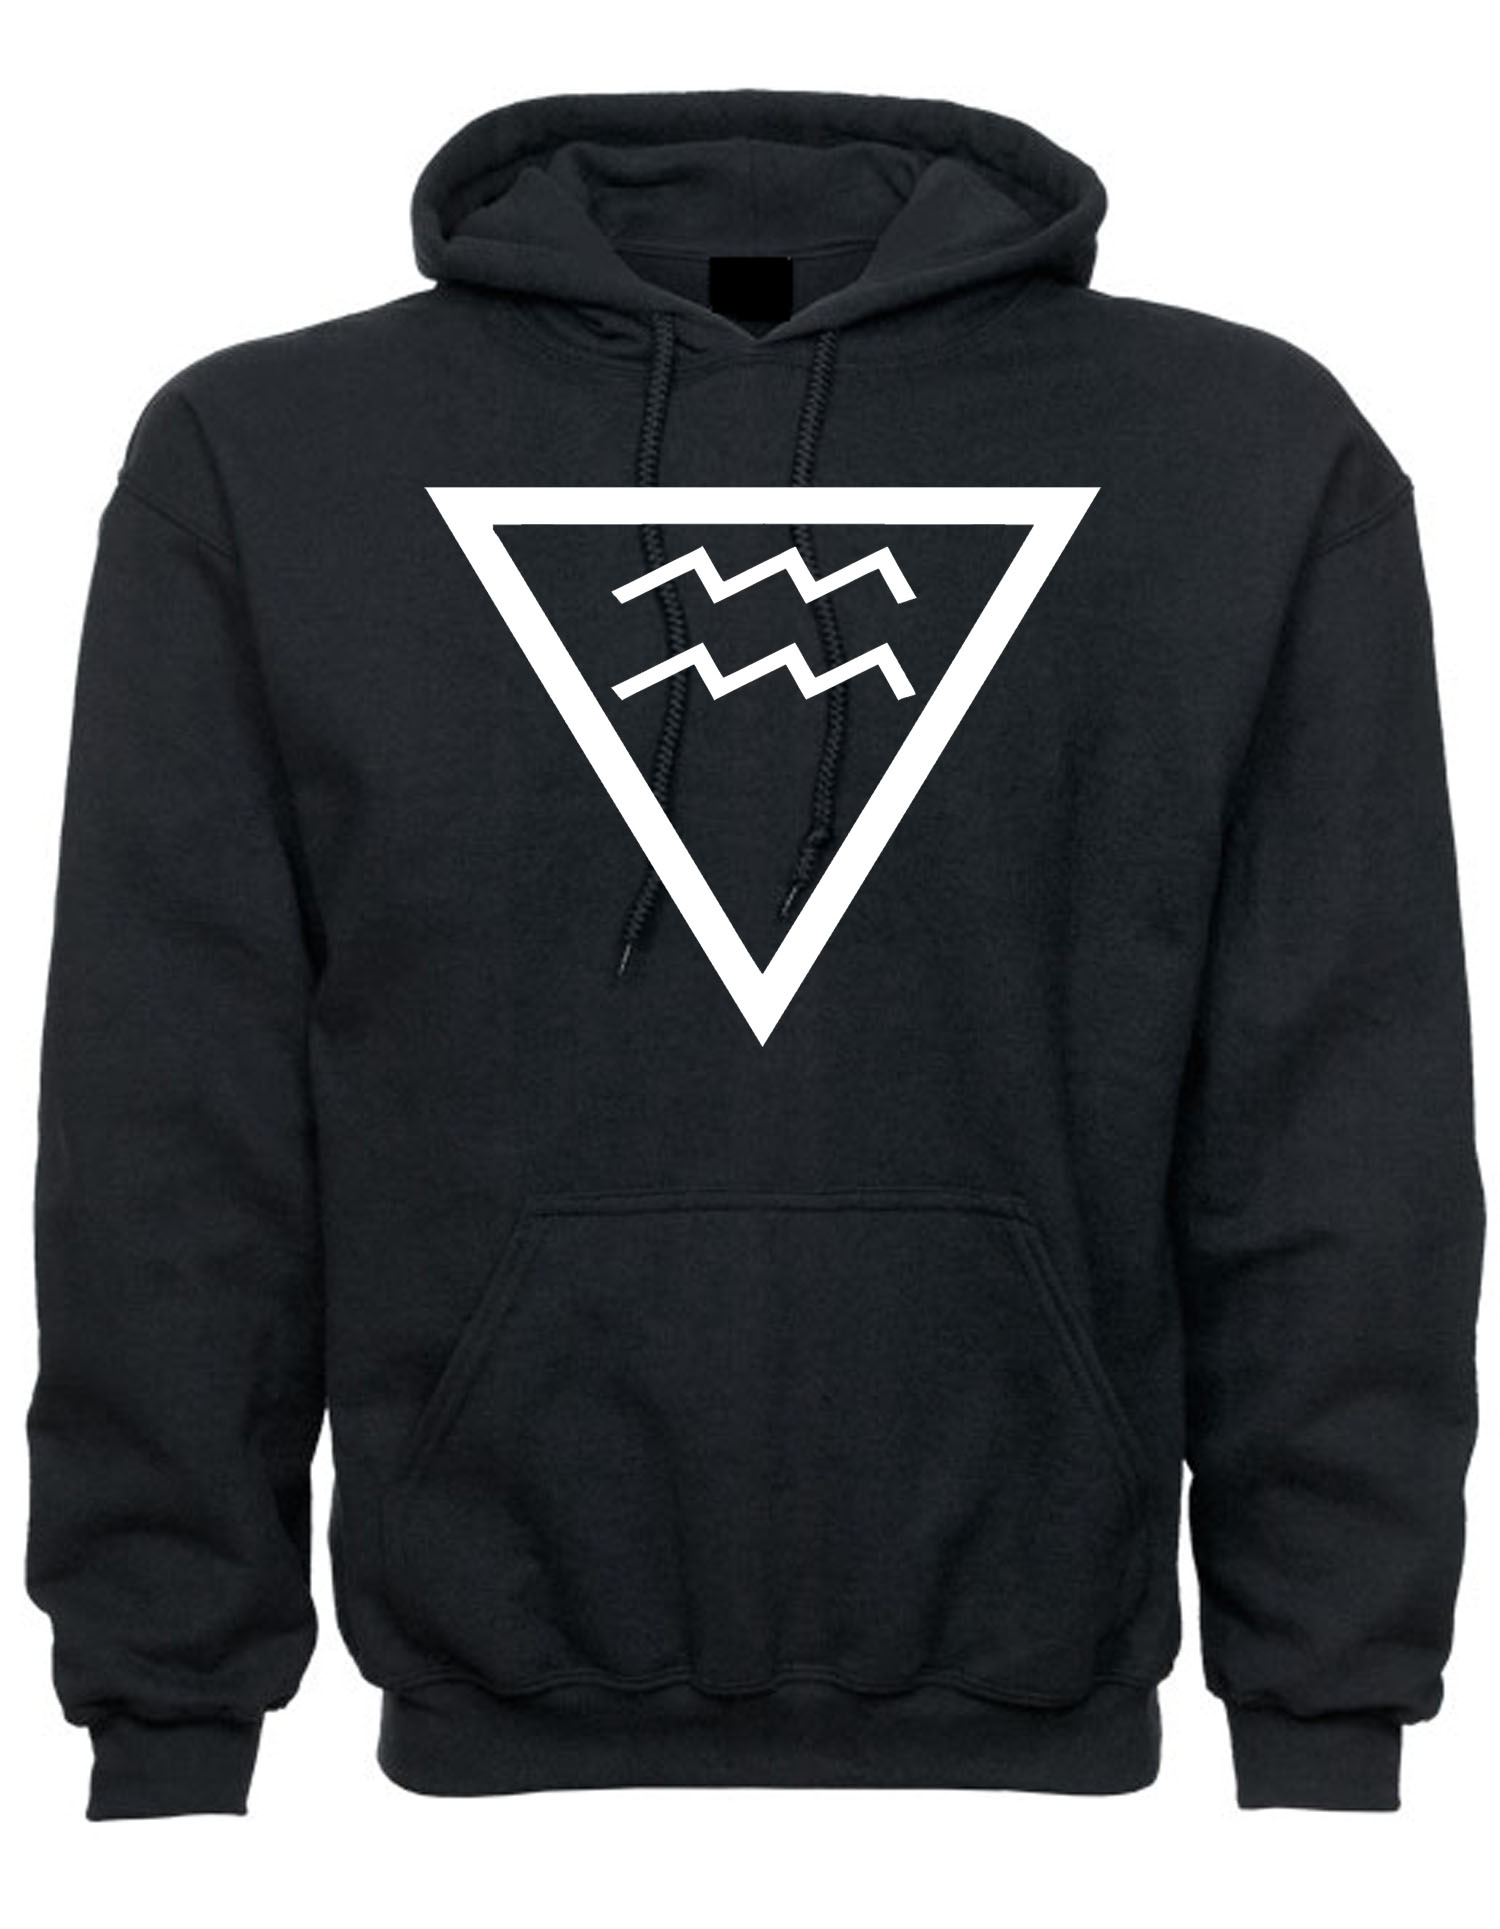 Book of Reign Hoodie